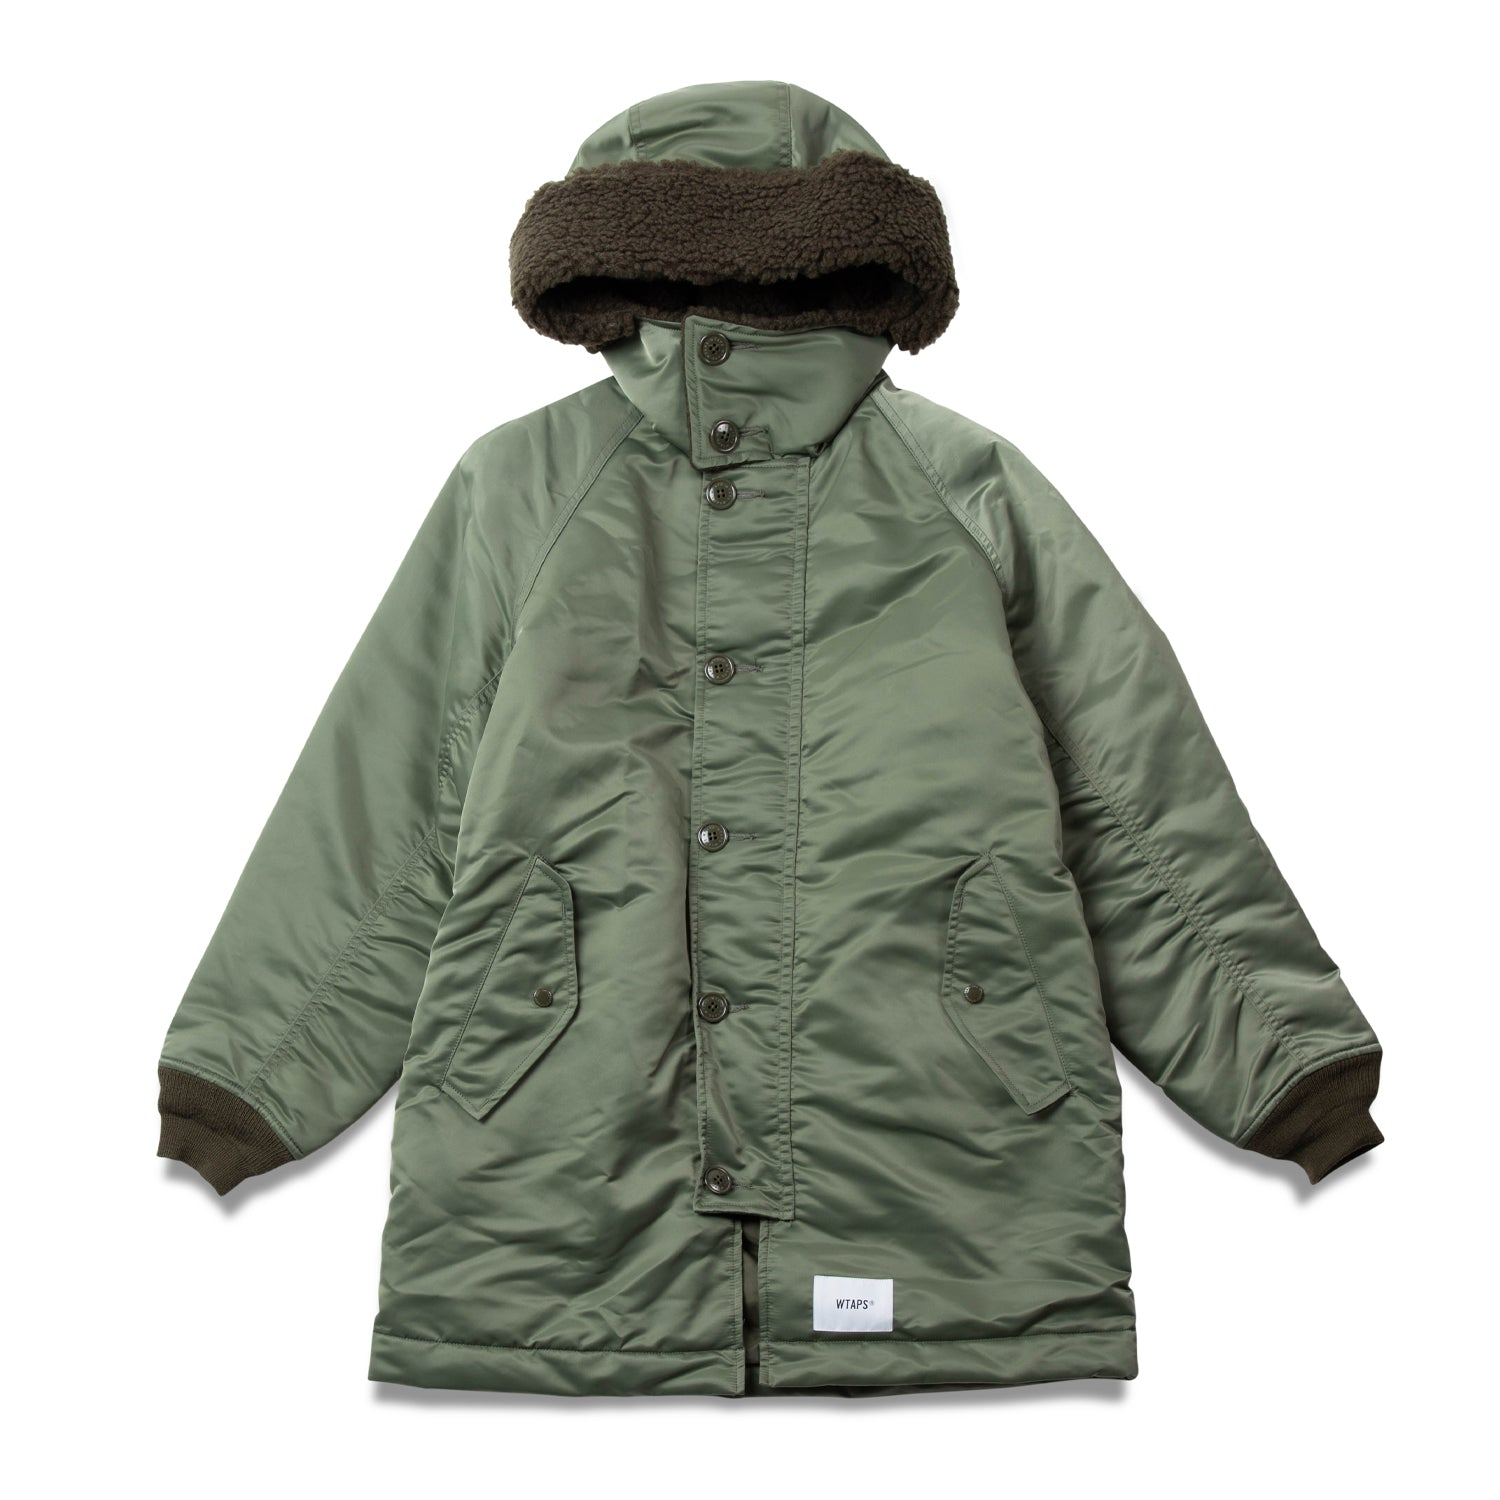 BLITZZ/ NYLON TWILL JACKET